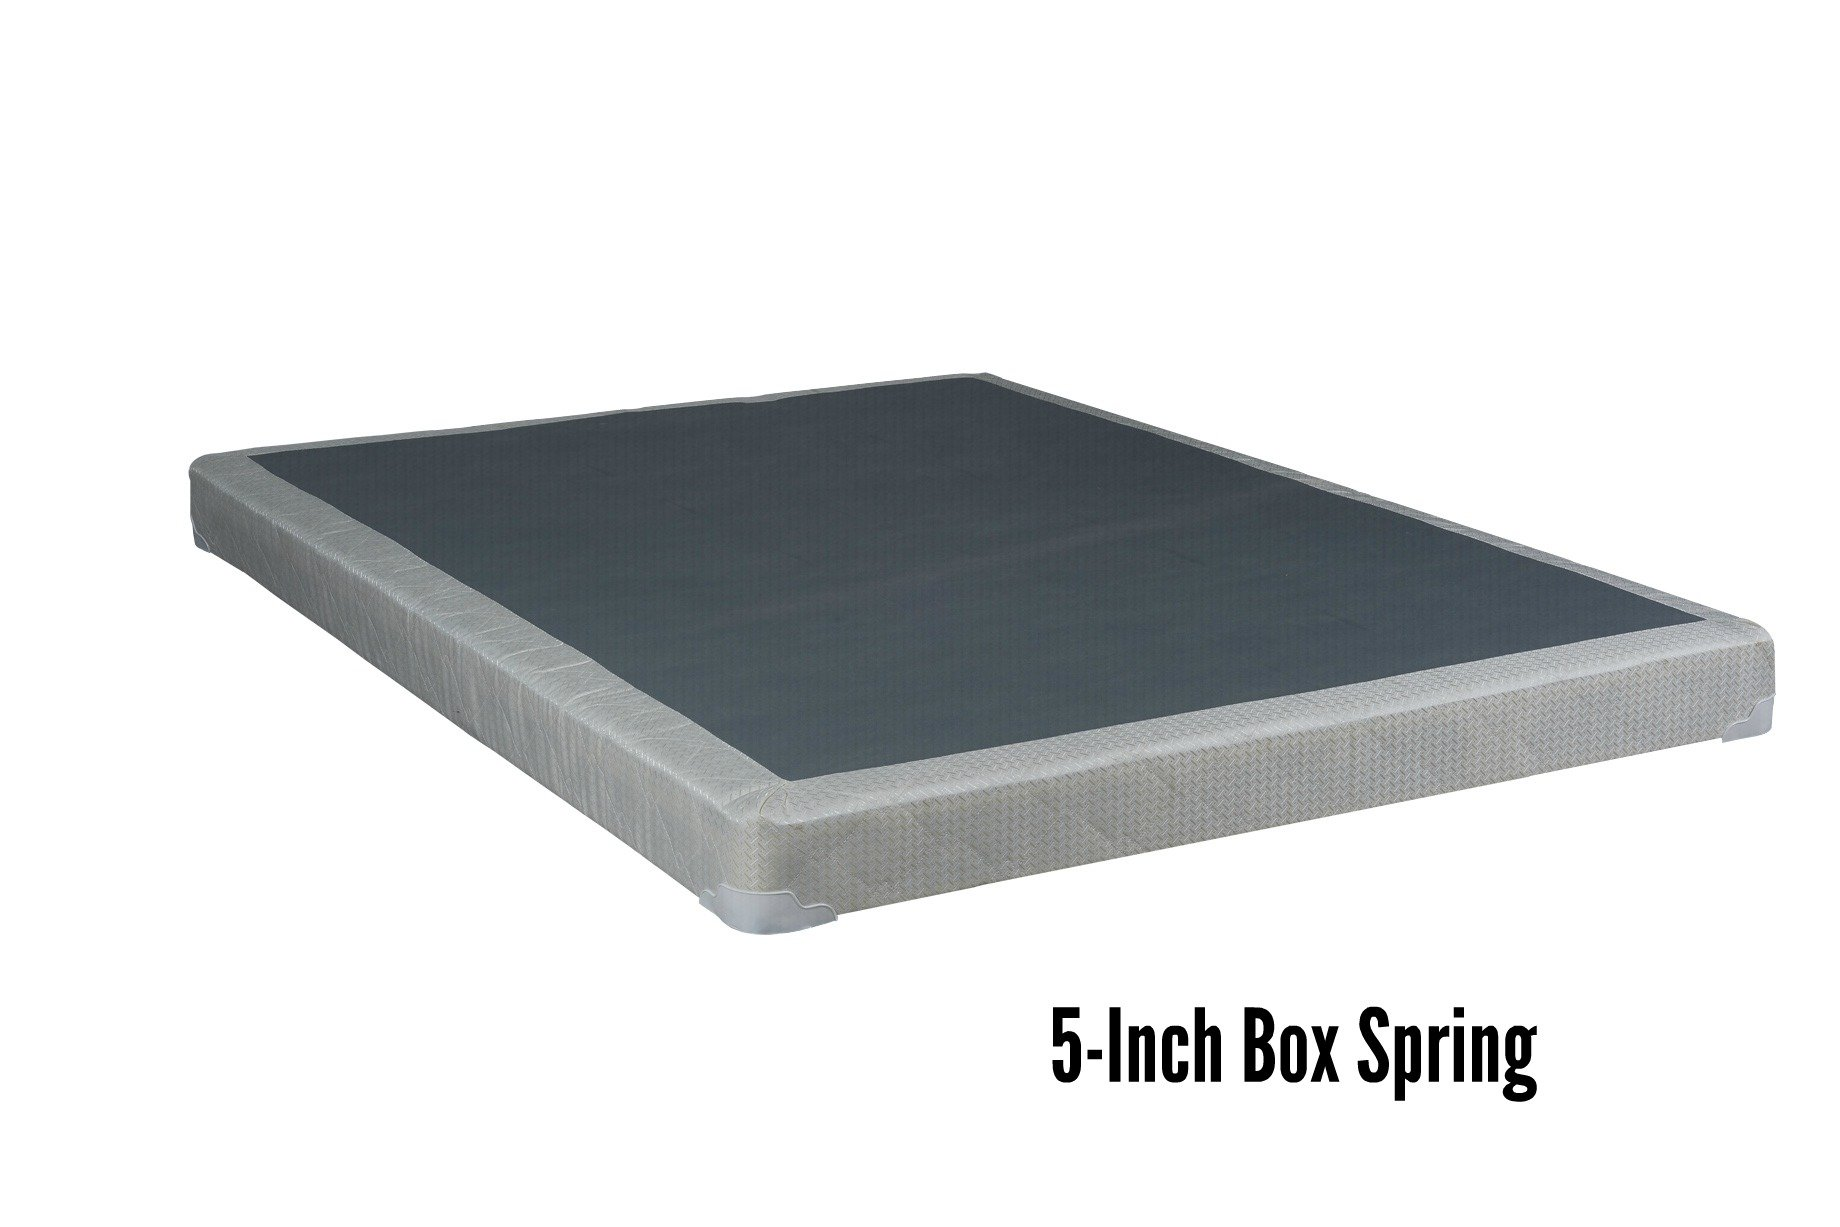 Spinal Solution 4-Inch Assembled Box Spring for Mattress, SensationCollection, Twin Size by Spinal Solution (Image #2)